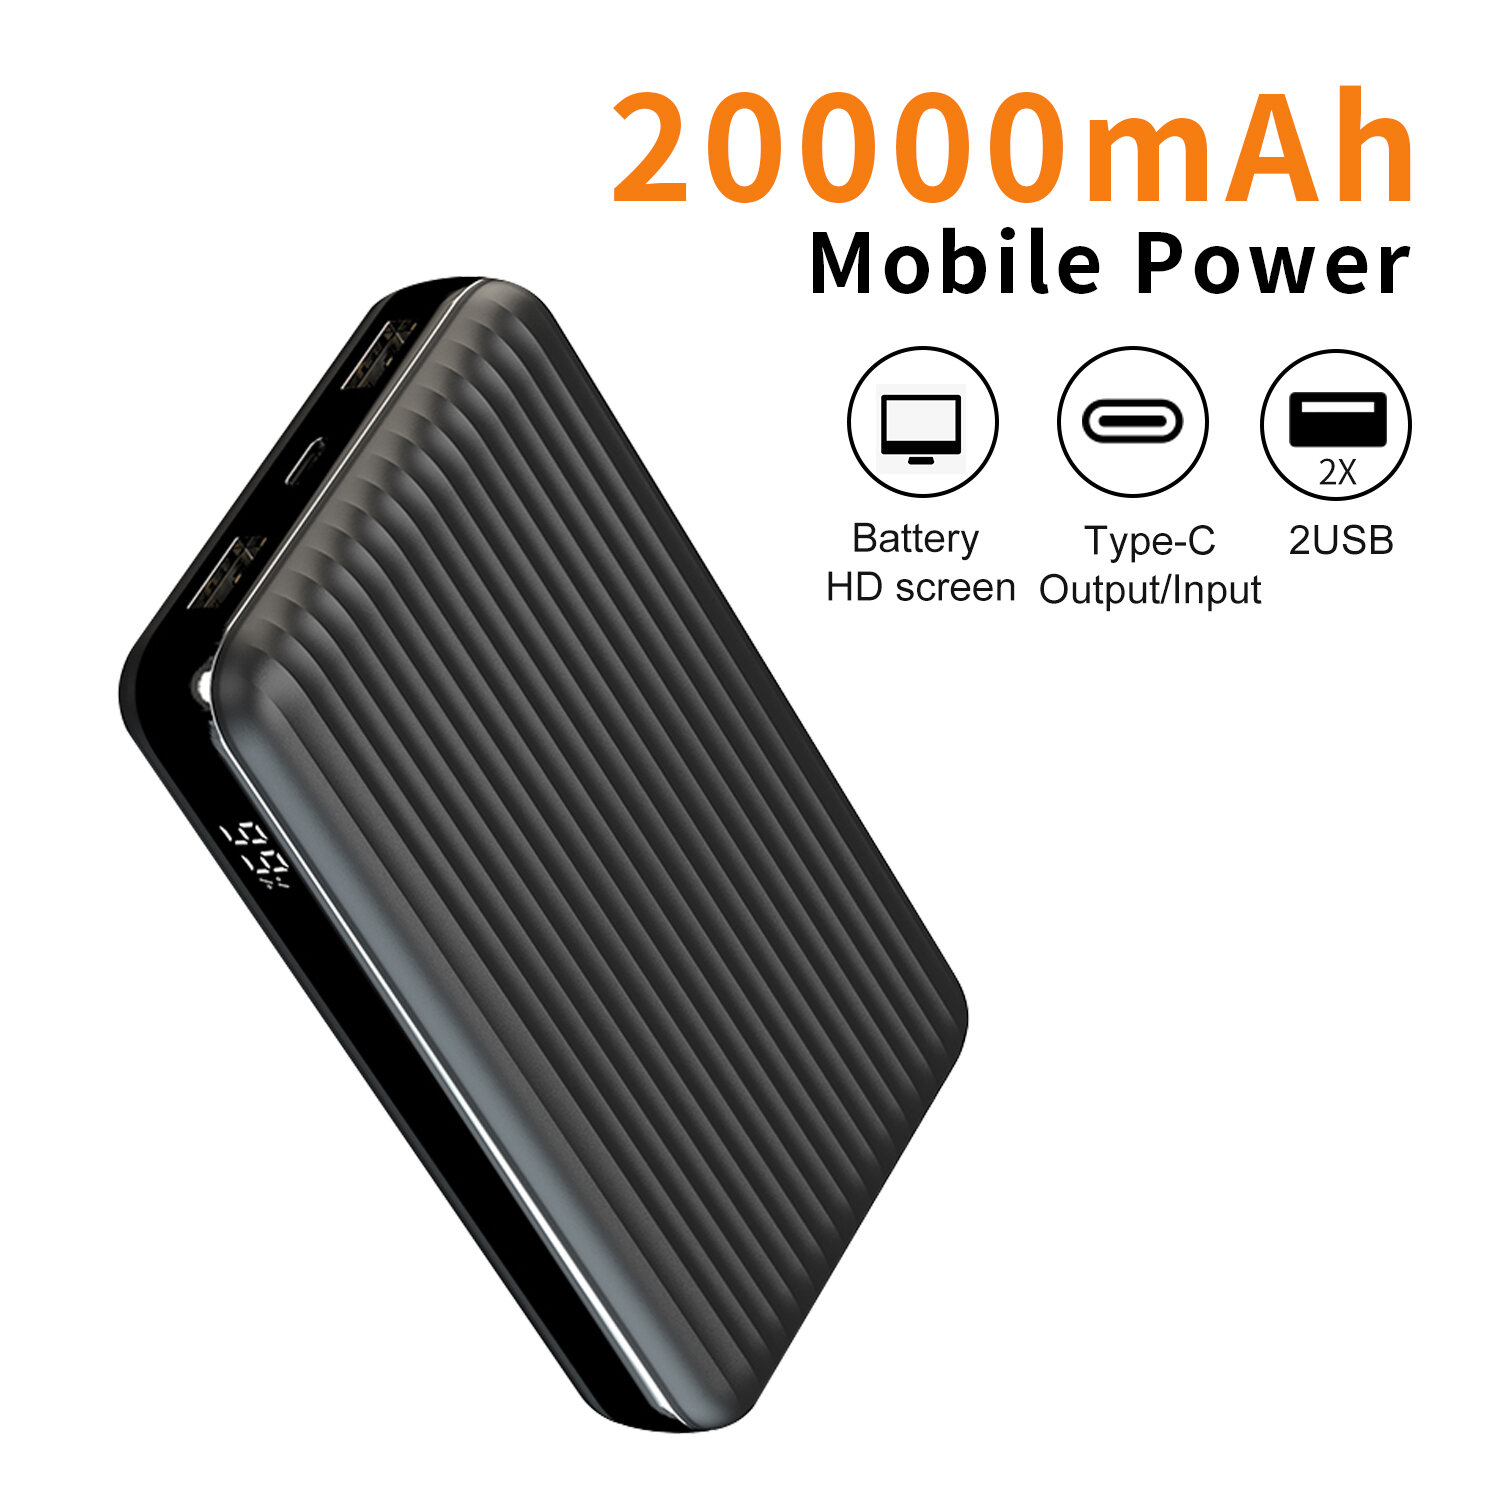 Bakeey PT-74820000mAhデュアルUSBQC3.0 + PD 100W PPS Quick Charge Power Bank for Samsung Galaxy S21 Note S20 ultra Huawei Mate40 P50 OnePlus 9 Pro for…